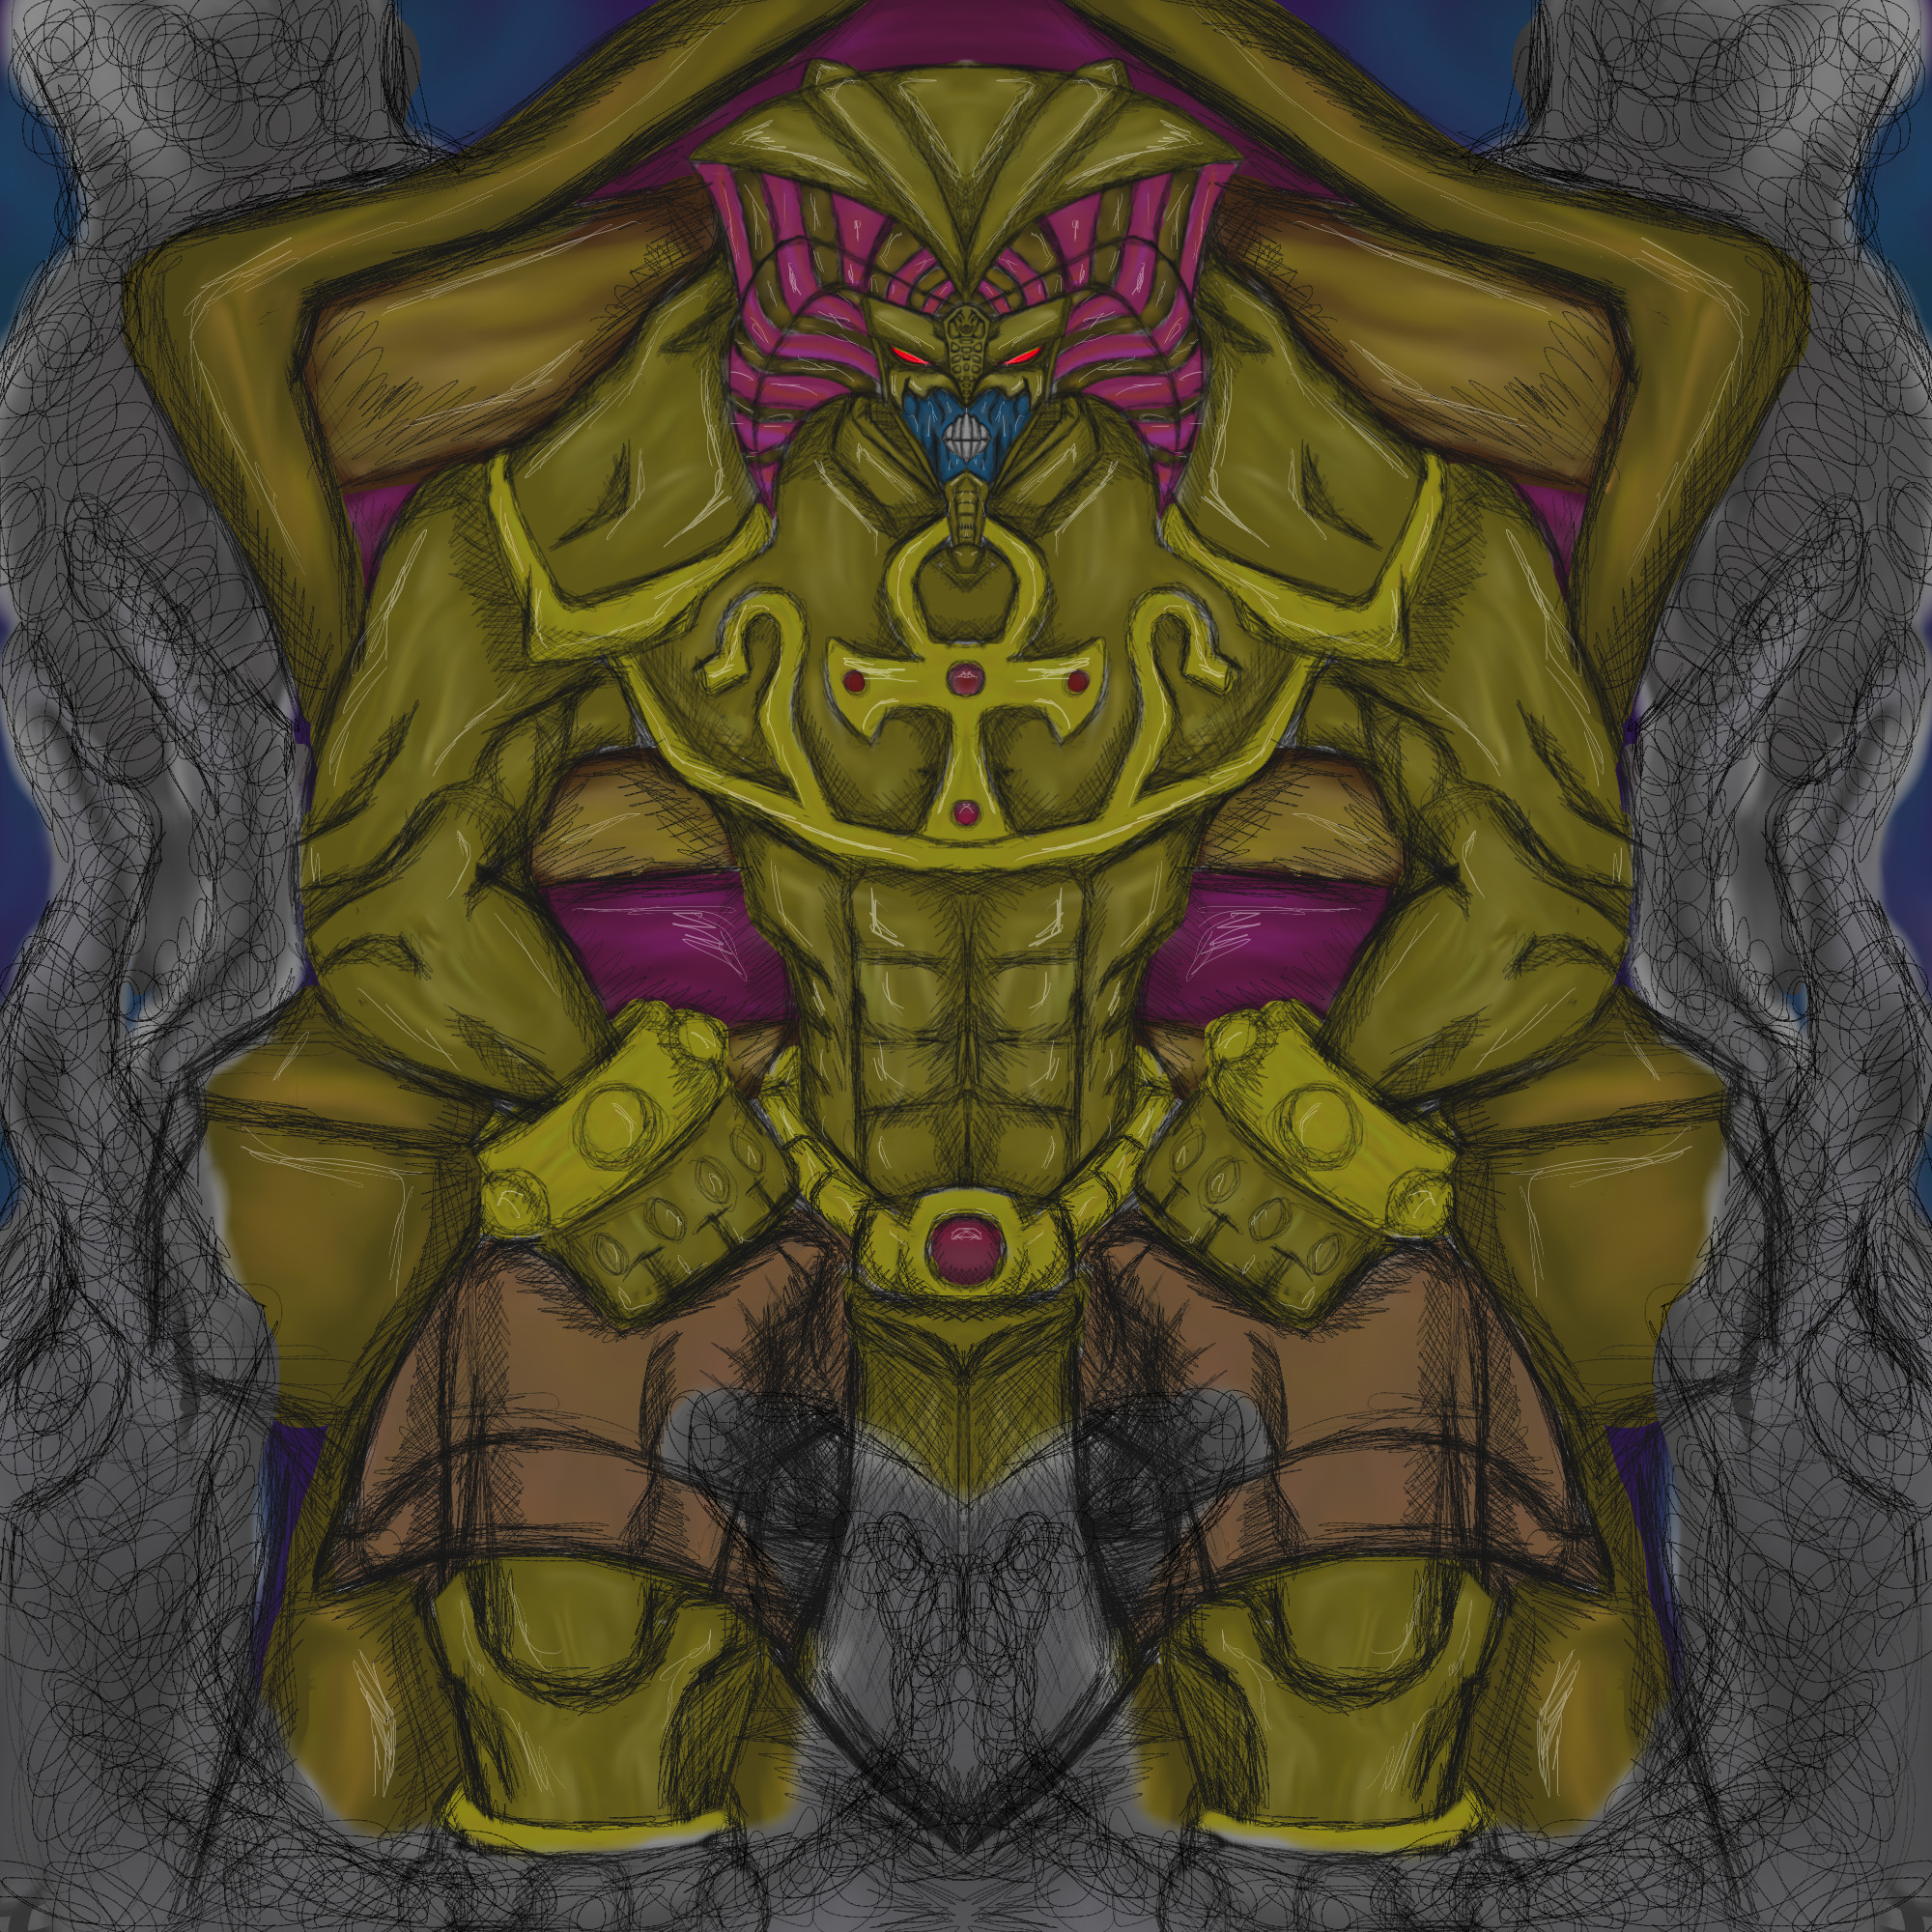 Res: 2000x2000, ... dragonfire53511 Yugioh - Exodia the Forbidden One by dragonfire53511